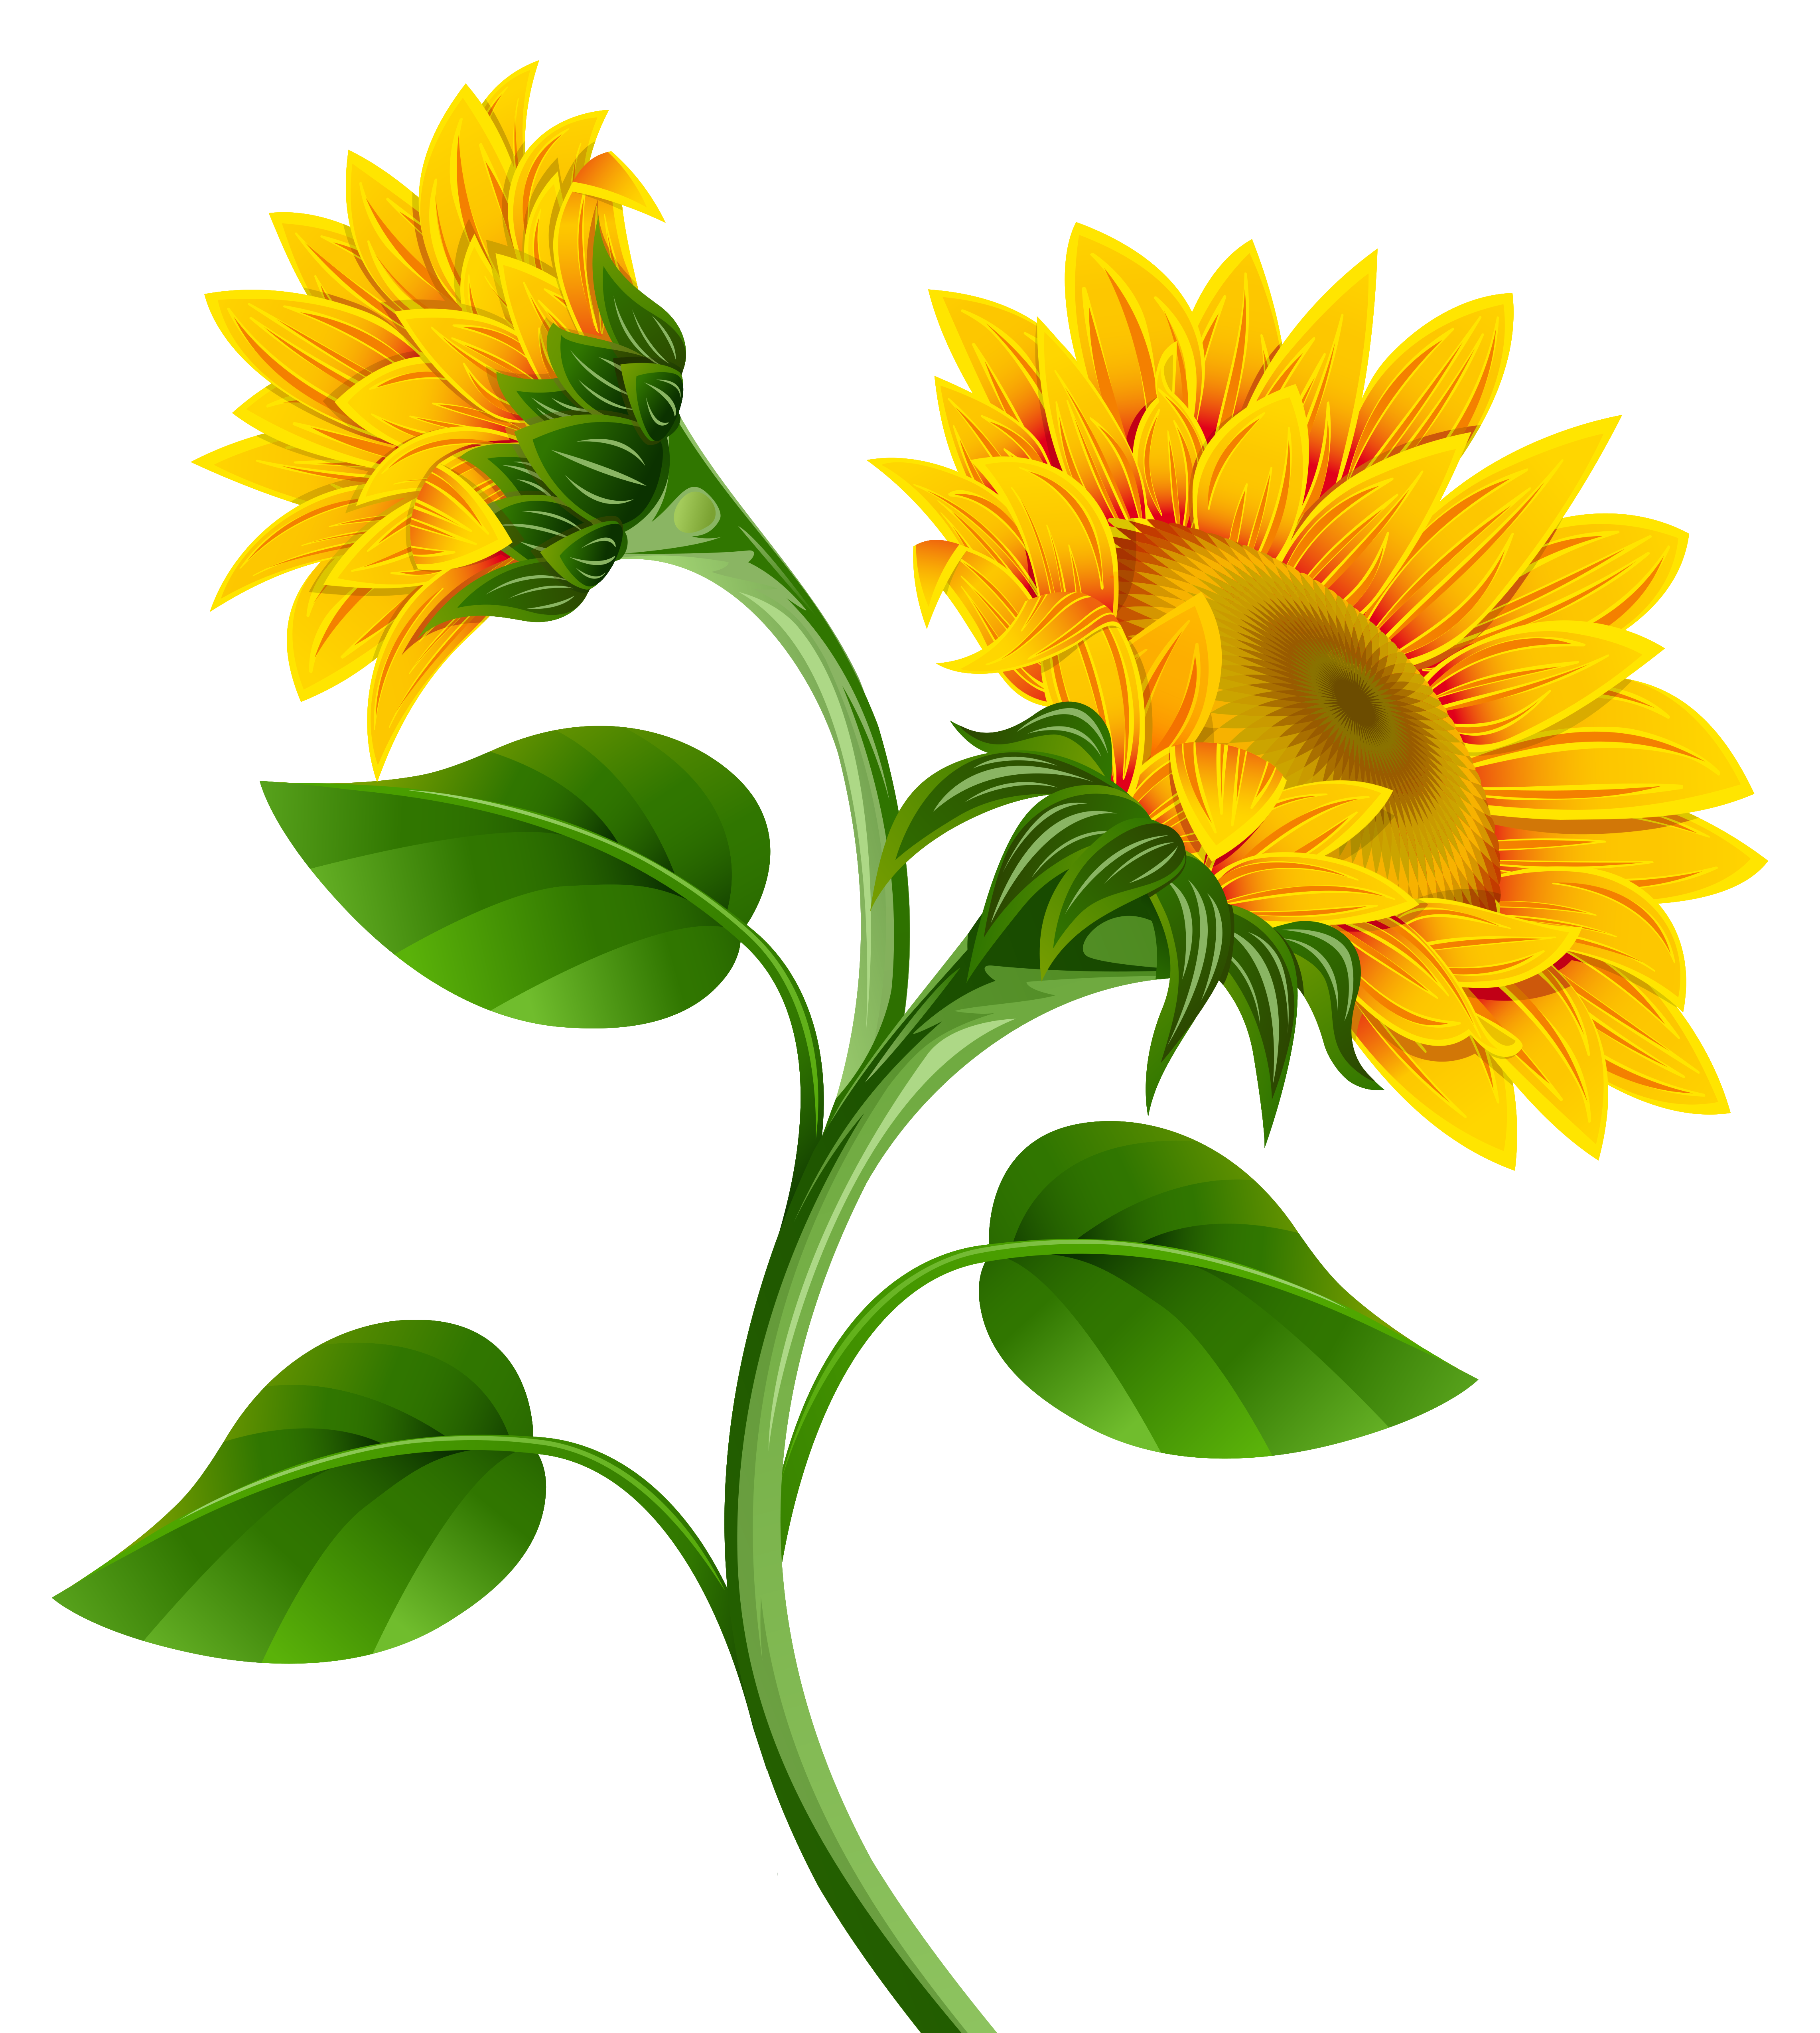 Sunflowers png image gallery. White clipart sunflower